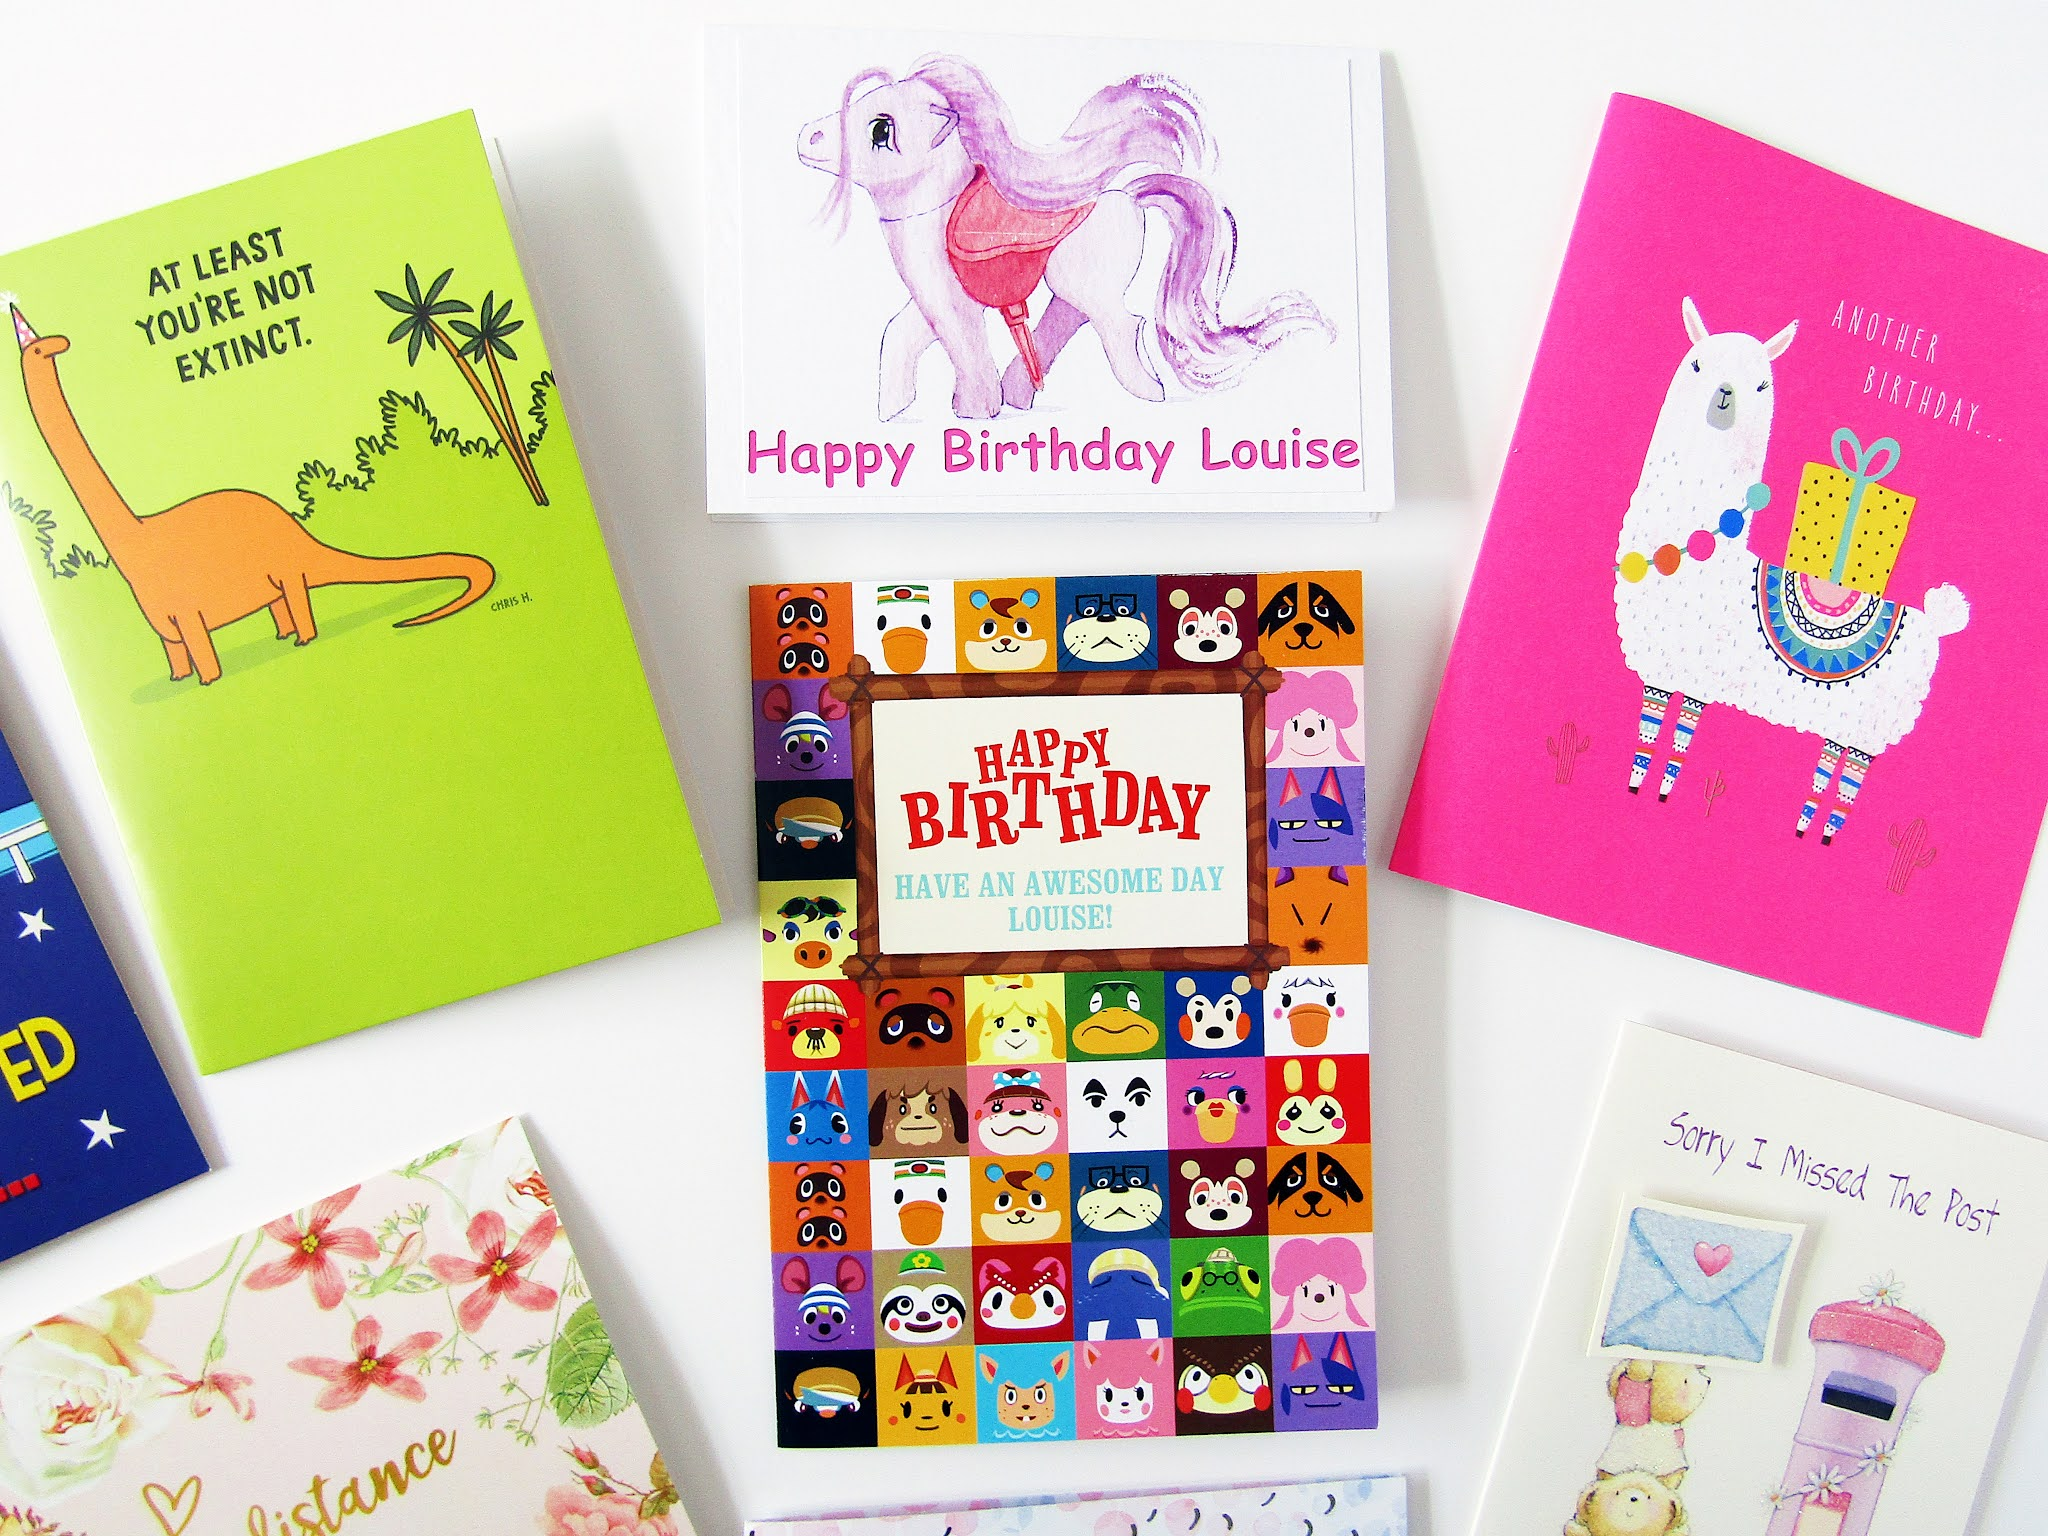 A photo of birthday cards